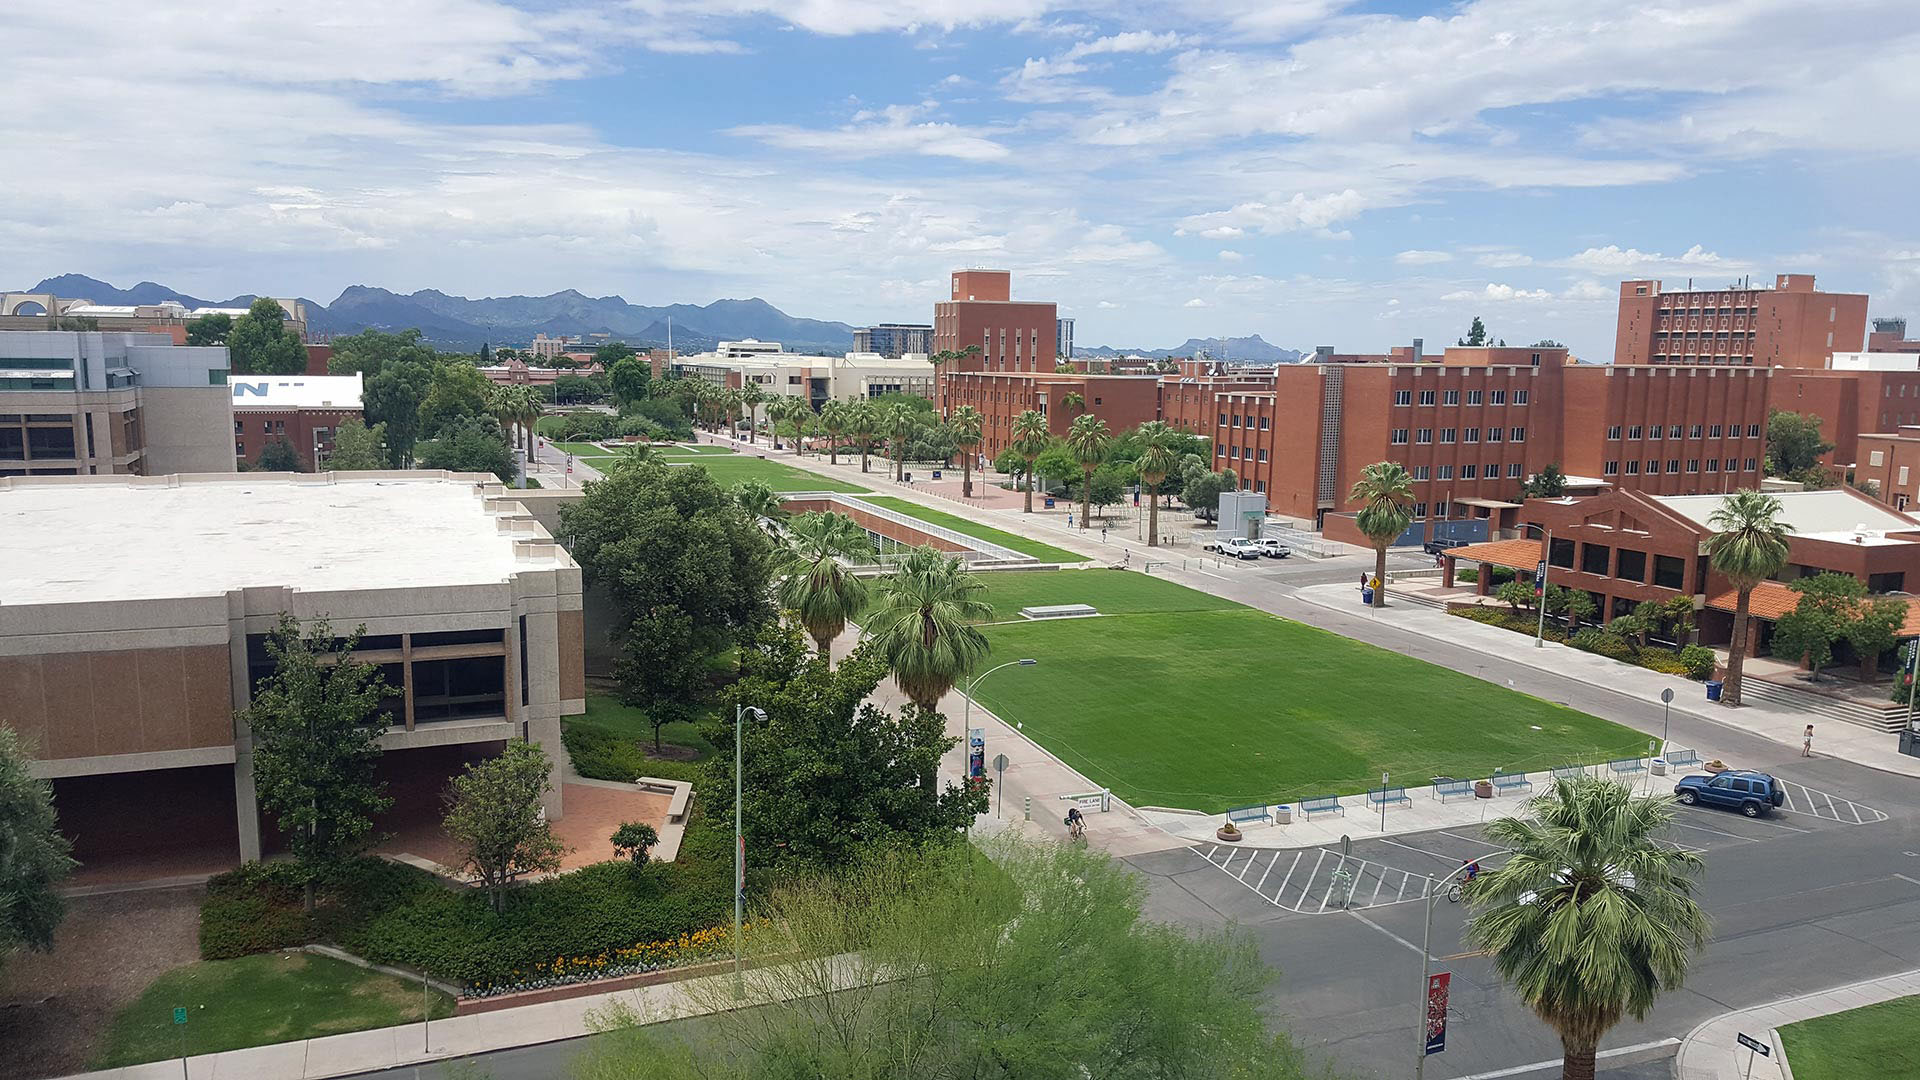 University of Arizona main campus.